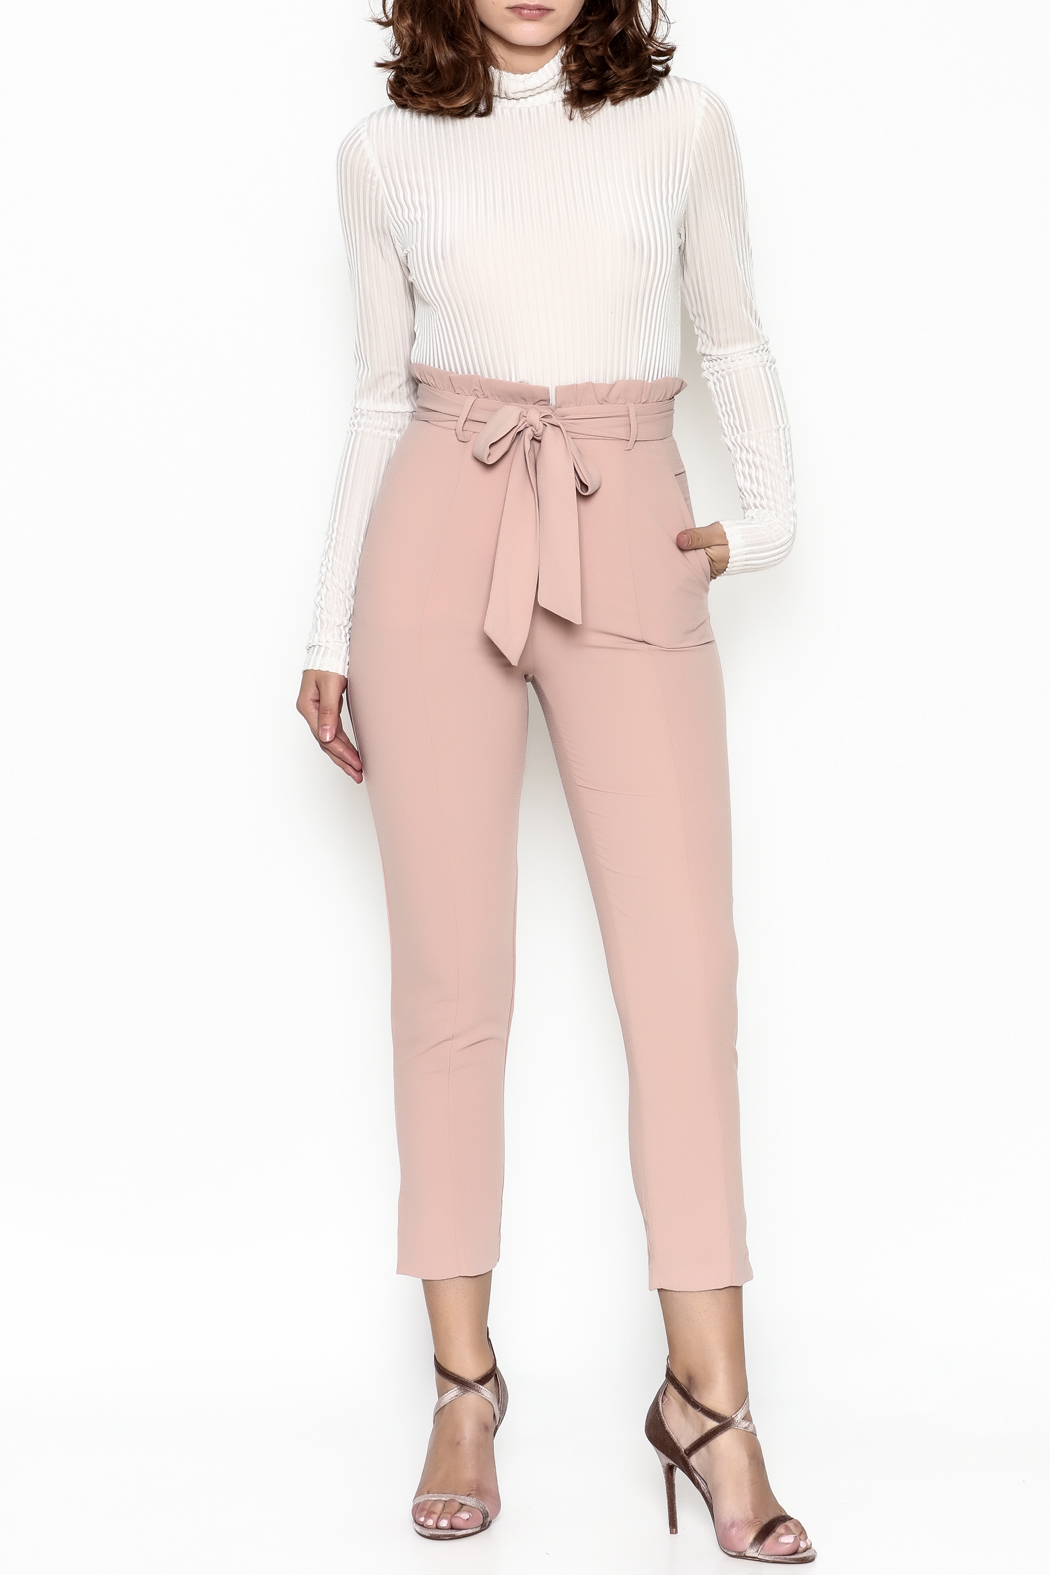 Do & Be Ruffle Waist Trouser - Side Cropped Image